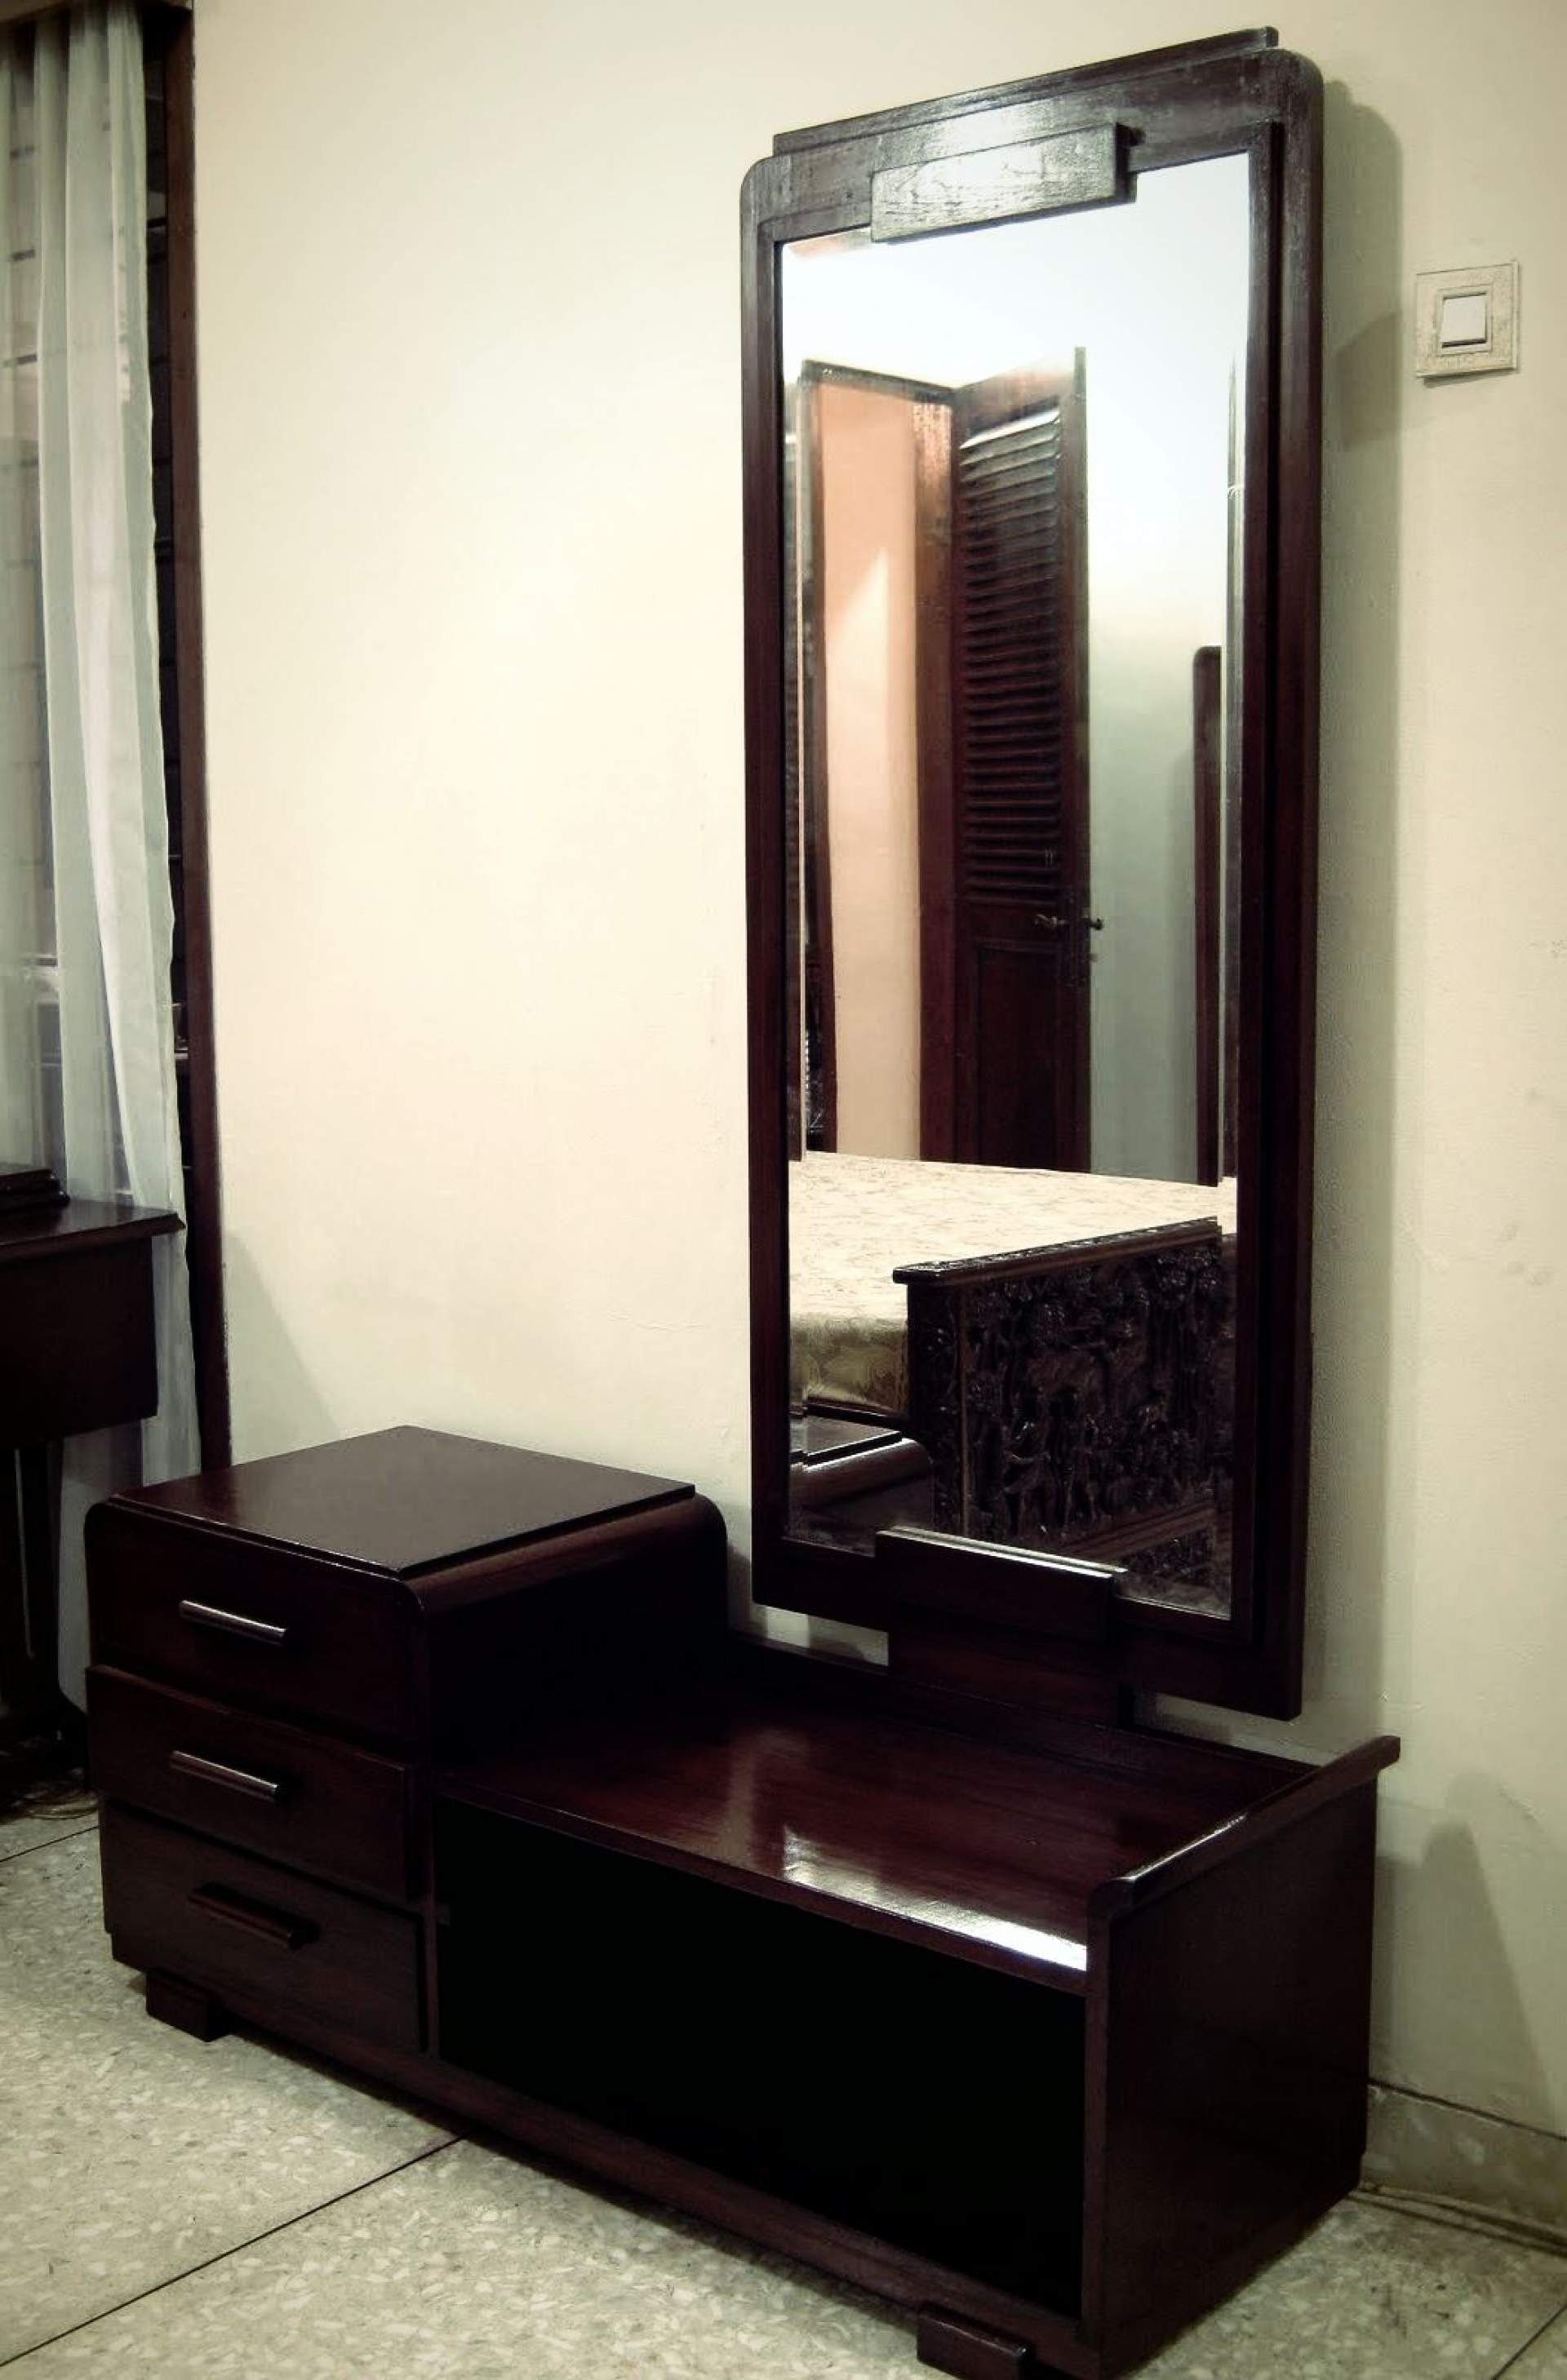 Modern Dressing Table Designs With Full Length Mirror Meja Karimun Makan Dining Rumah Kayu Jatu Classic Art